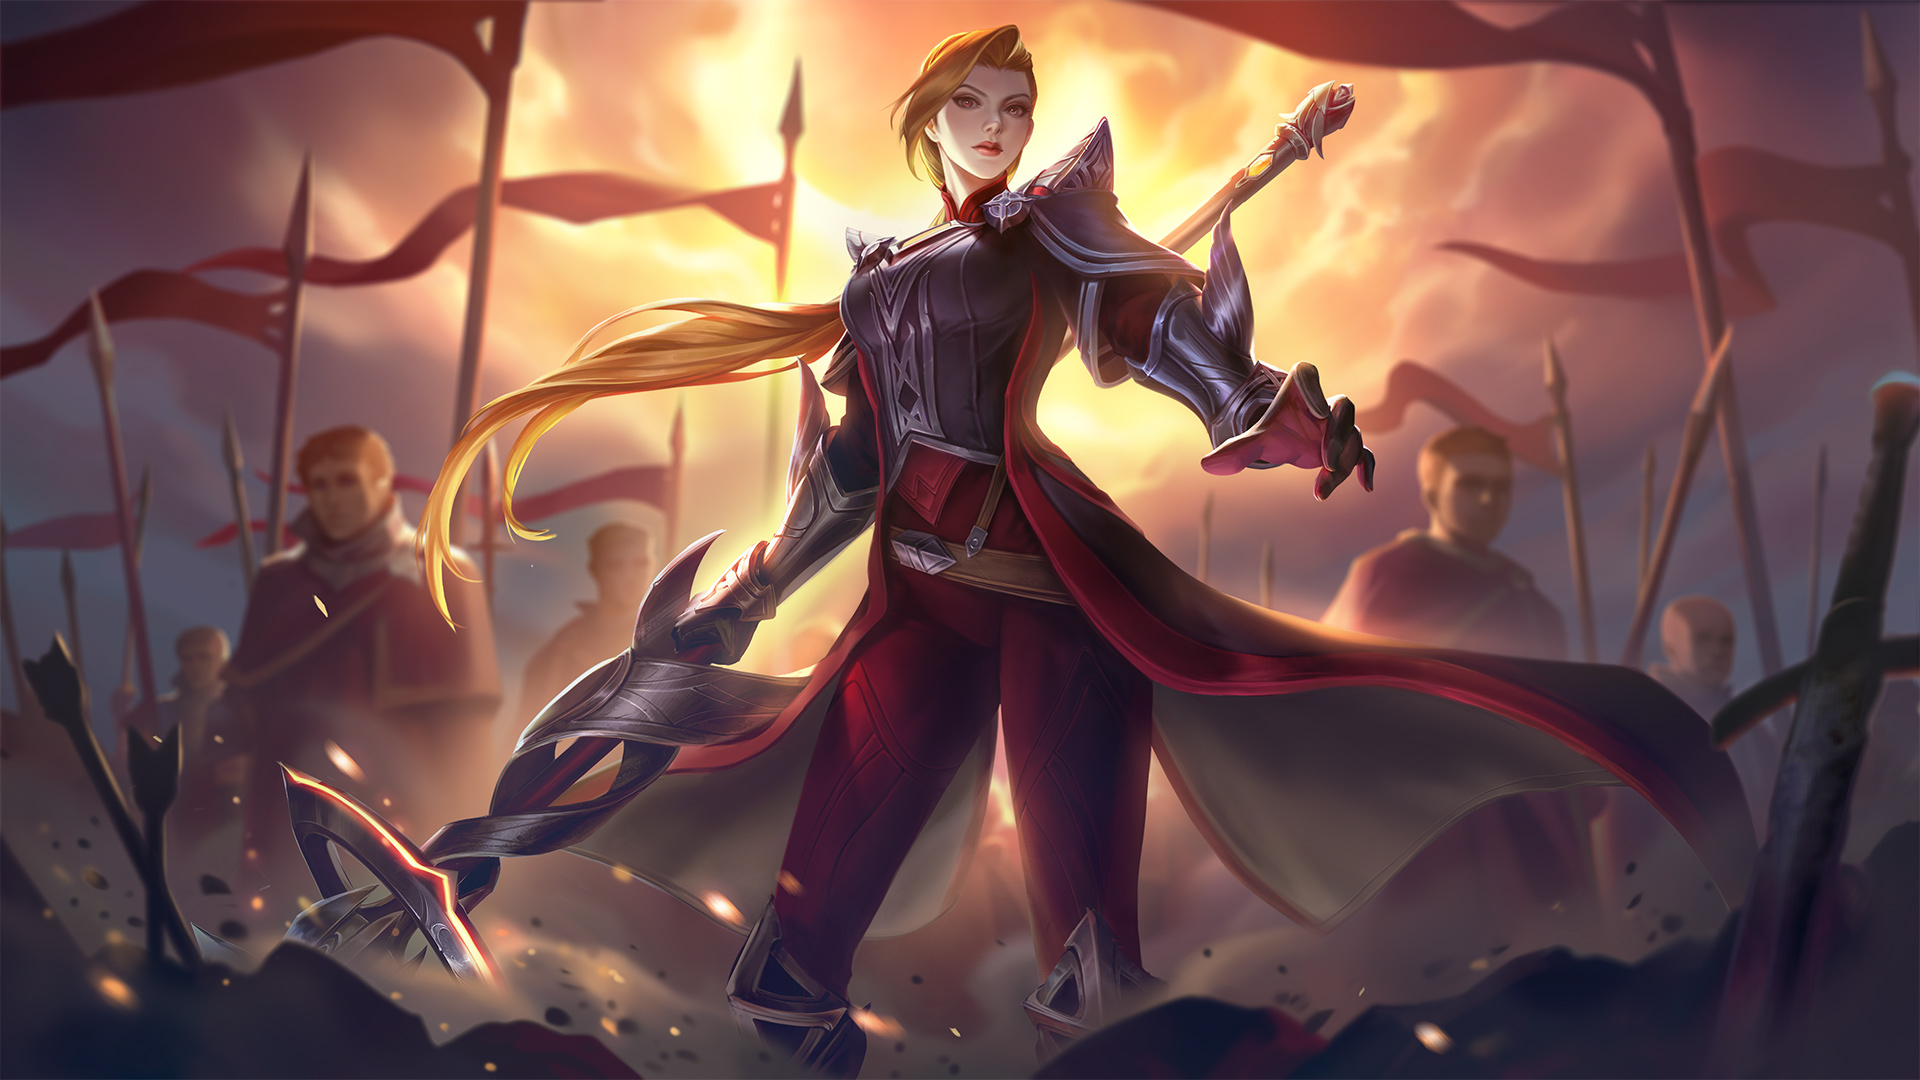 Best Build Silvanna Mobile Legends From Top Global 2021